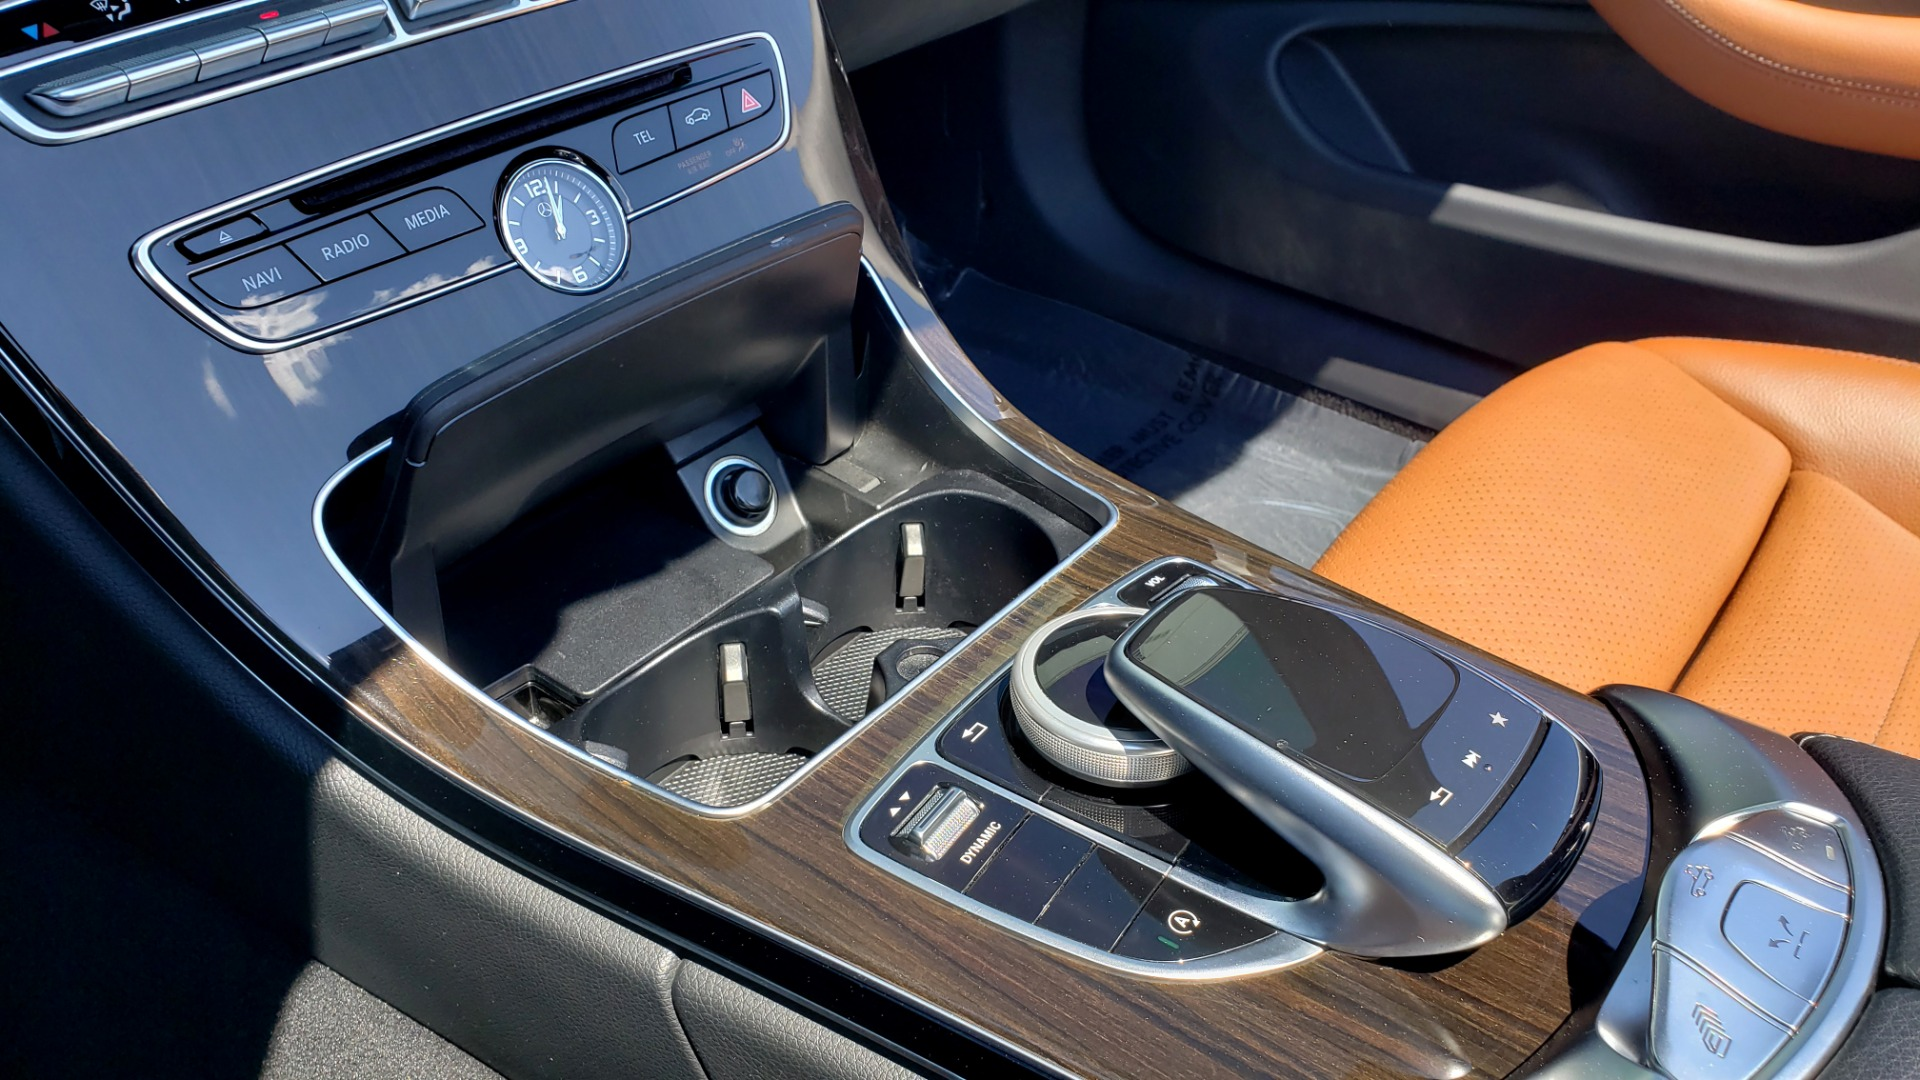 Used 2018 Mercedes-Benz C-CLASS C 300 CABRIOLET PREMIUM / AWD / BURMESTER SND / APPLE / REARVIEW for sale $44,995 at Formula Imports in Charlotte NC 28227 60